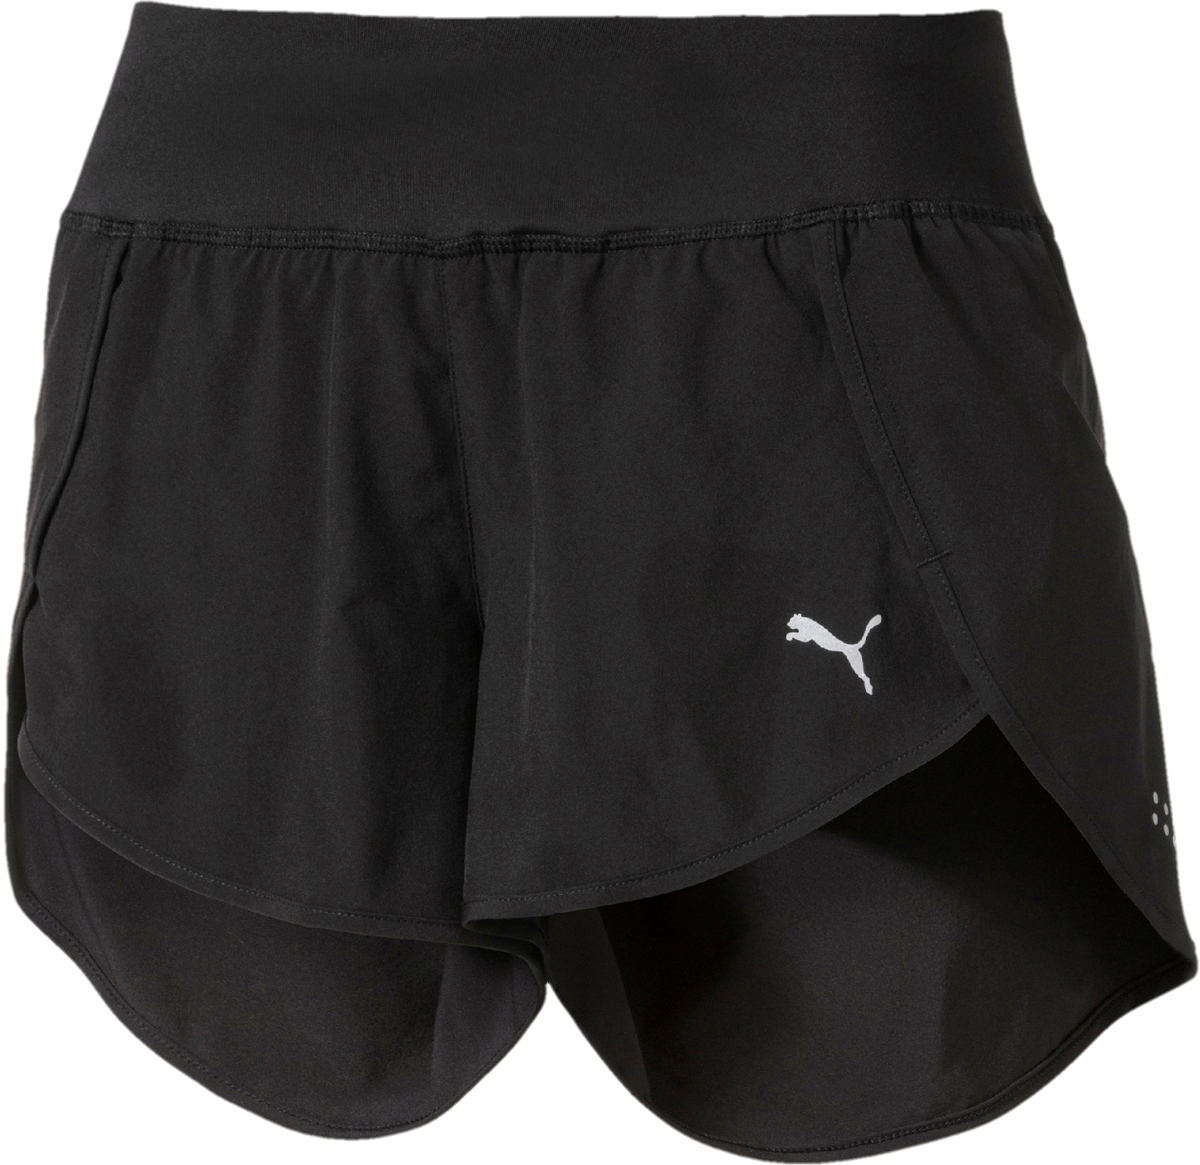 Шорты женские Puma Blast 3 Short W, цвет: черный. 51628401. Размер L (46/48) 100% brand new g480 g480a laptop fan for lenovo g480m g485 cooler g580 g585 cpu fan genuine g480 g480a laptop cpu cooling fan